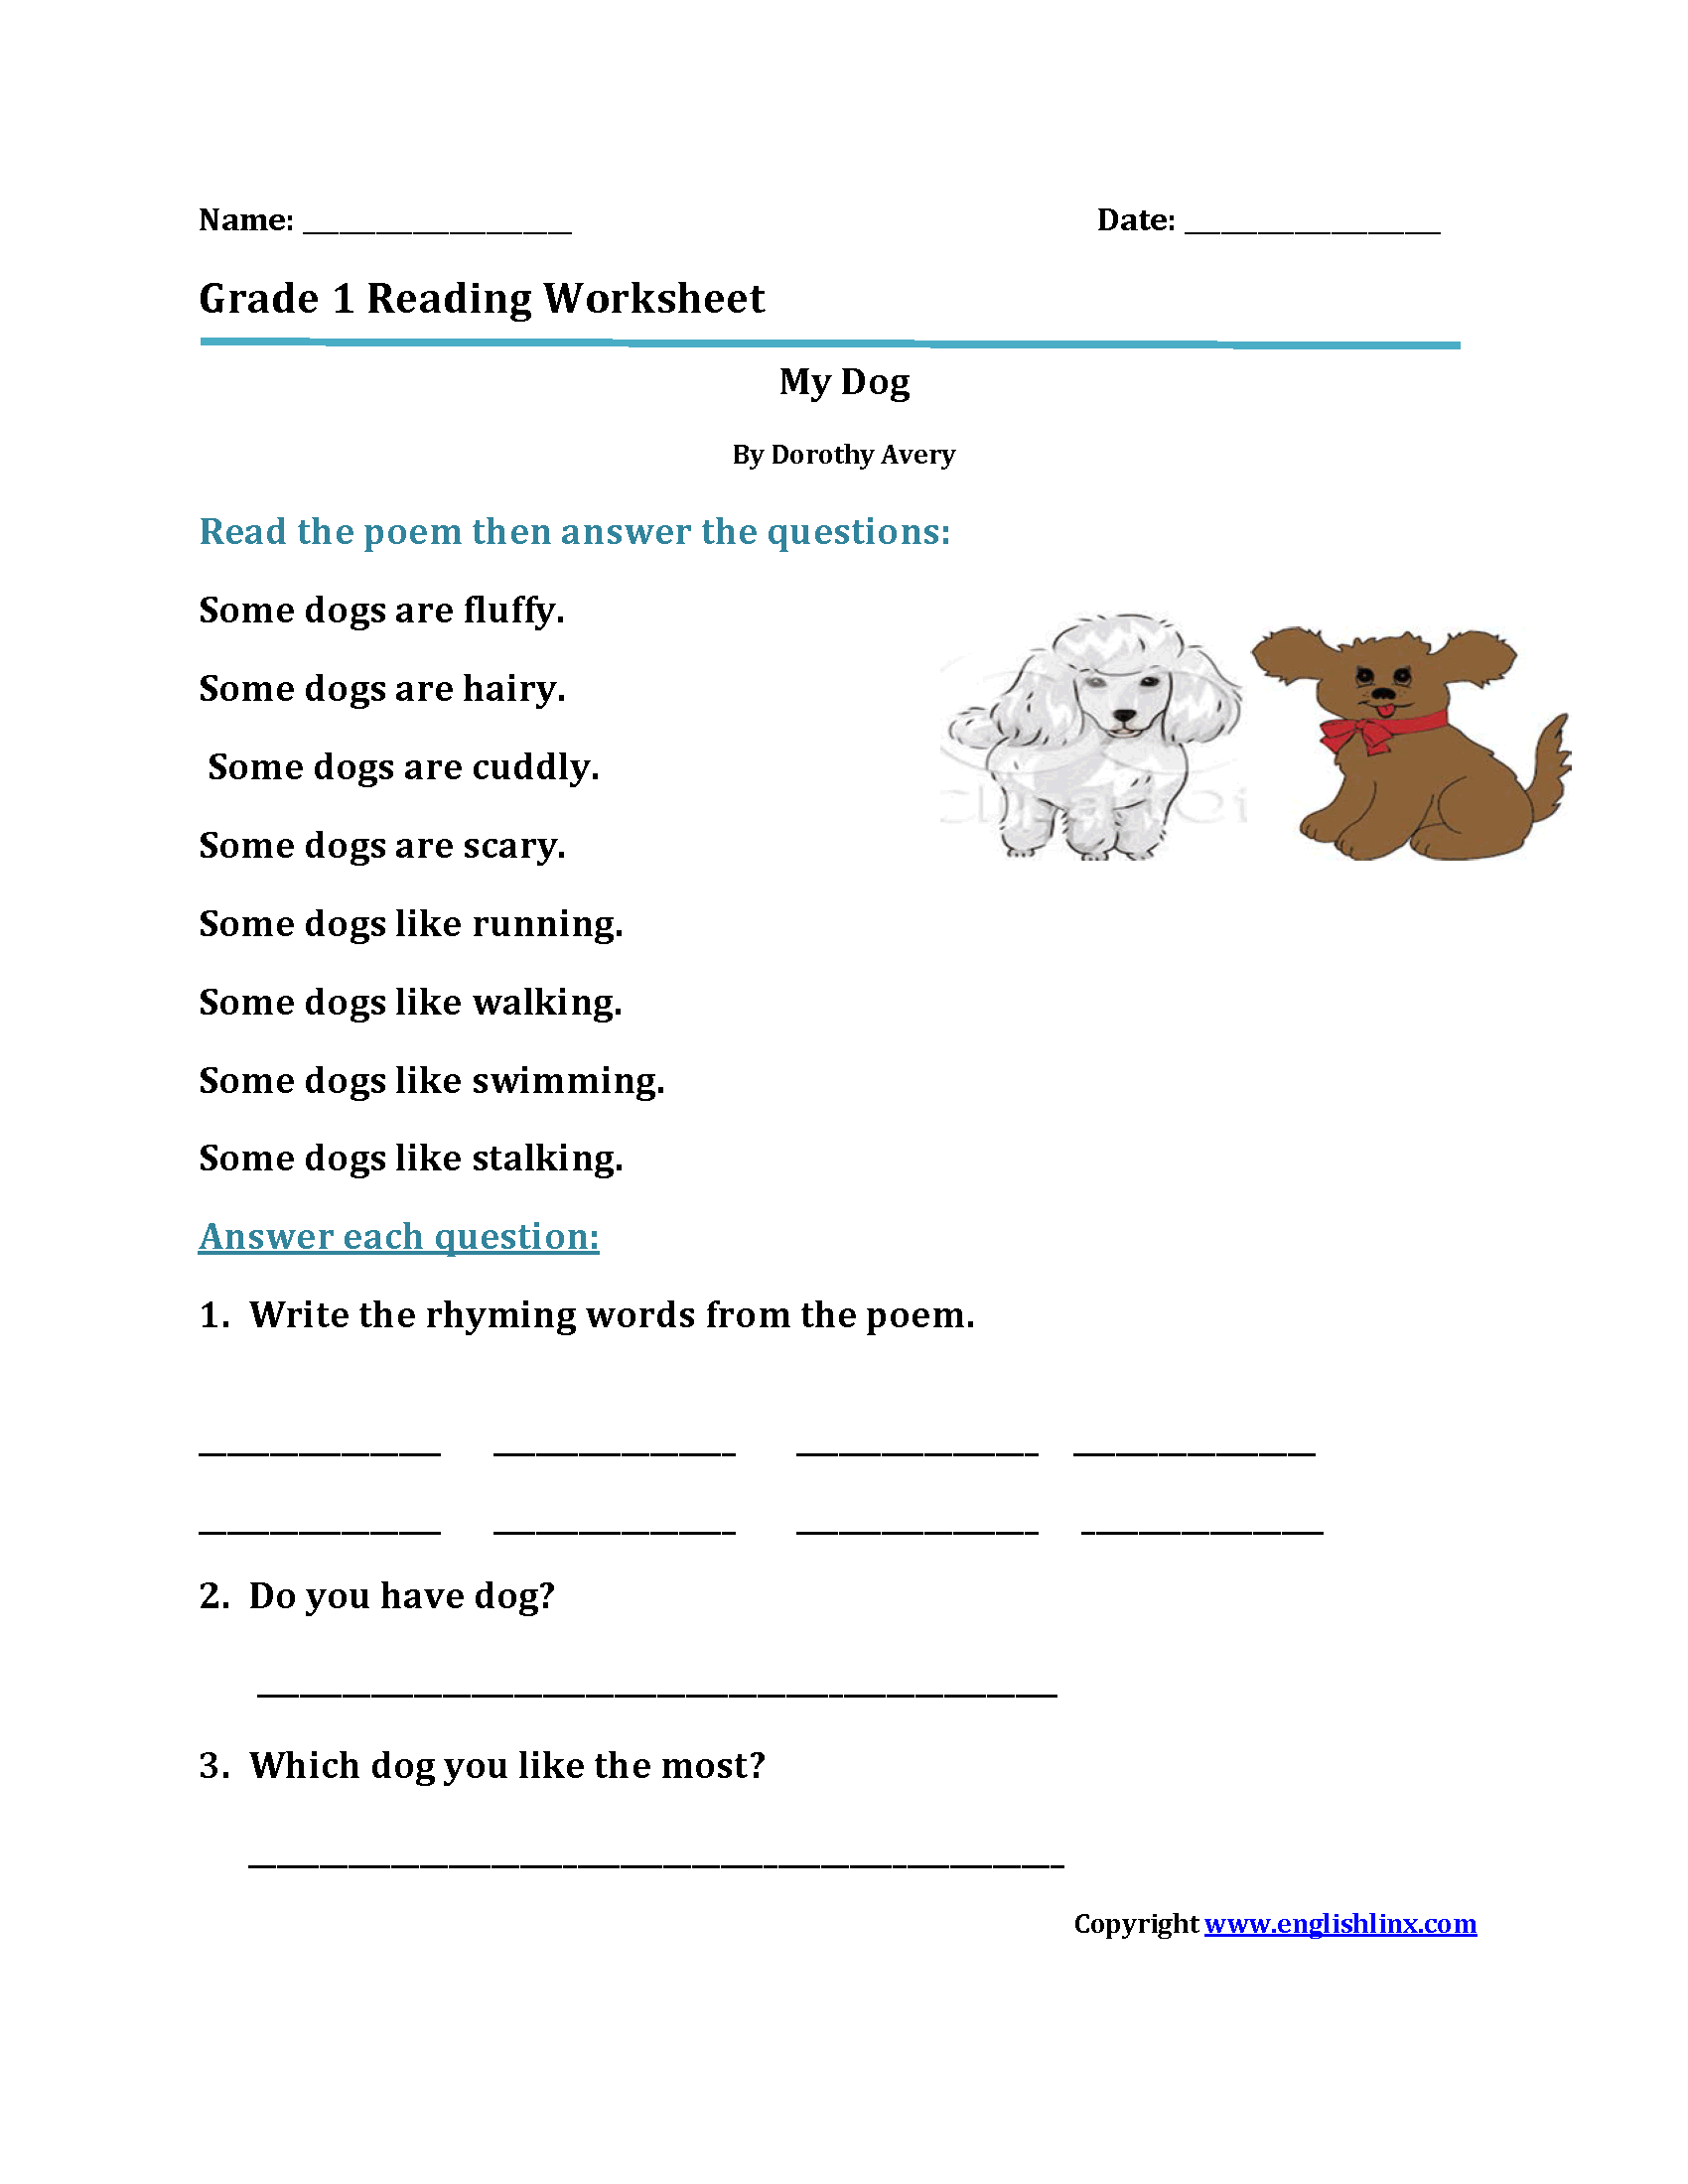 Bellamy Daily Work Elementary Flps Homework